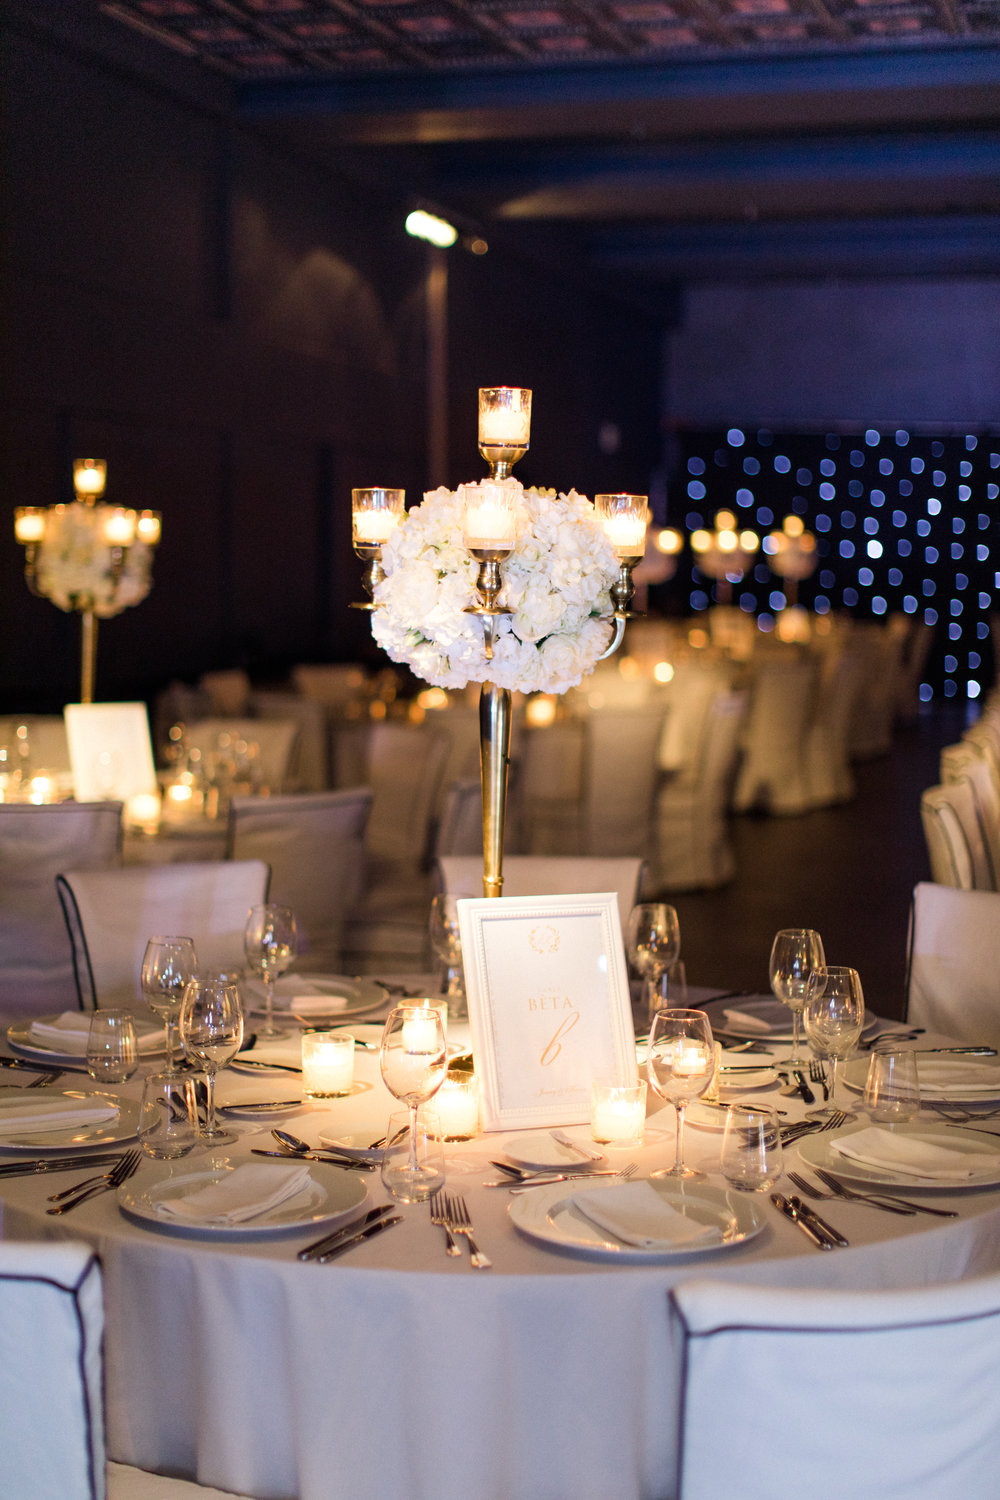 wedding-dinner-party-jewish-traditional-menu-luxury-event-decoration-hanging-wisteria-crystal-chandeliers-light-design-table numbers-table-arrangements-gold-candle-holders-event-planning-silkentile-destination-royal-myconian-delos-venue